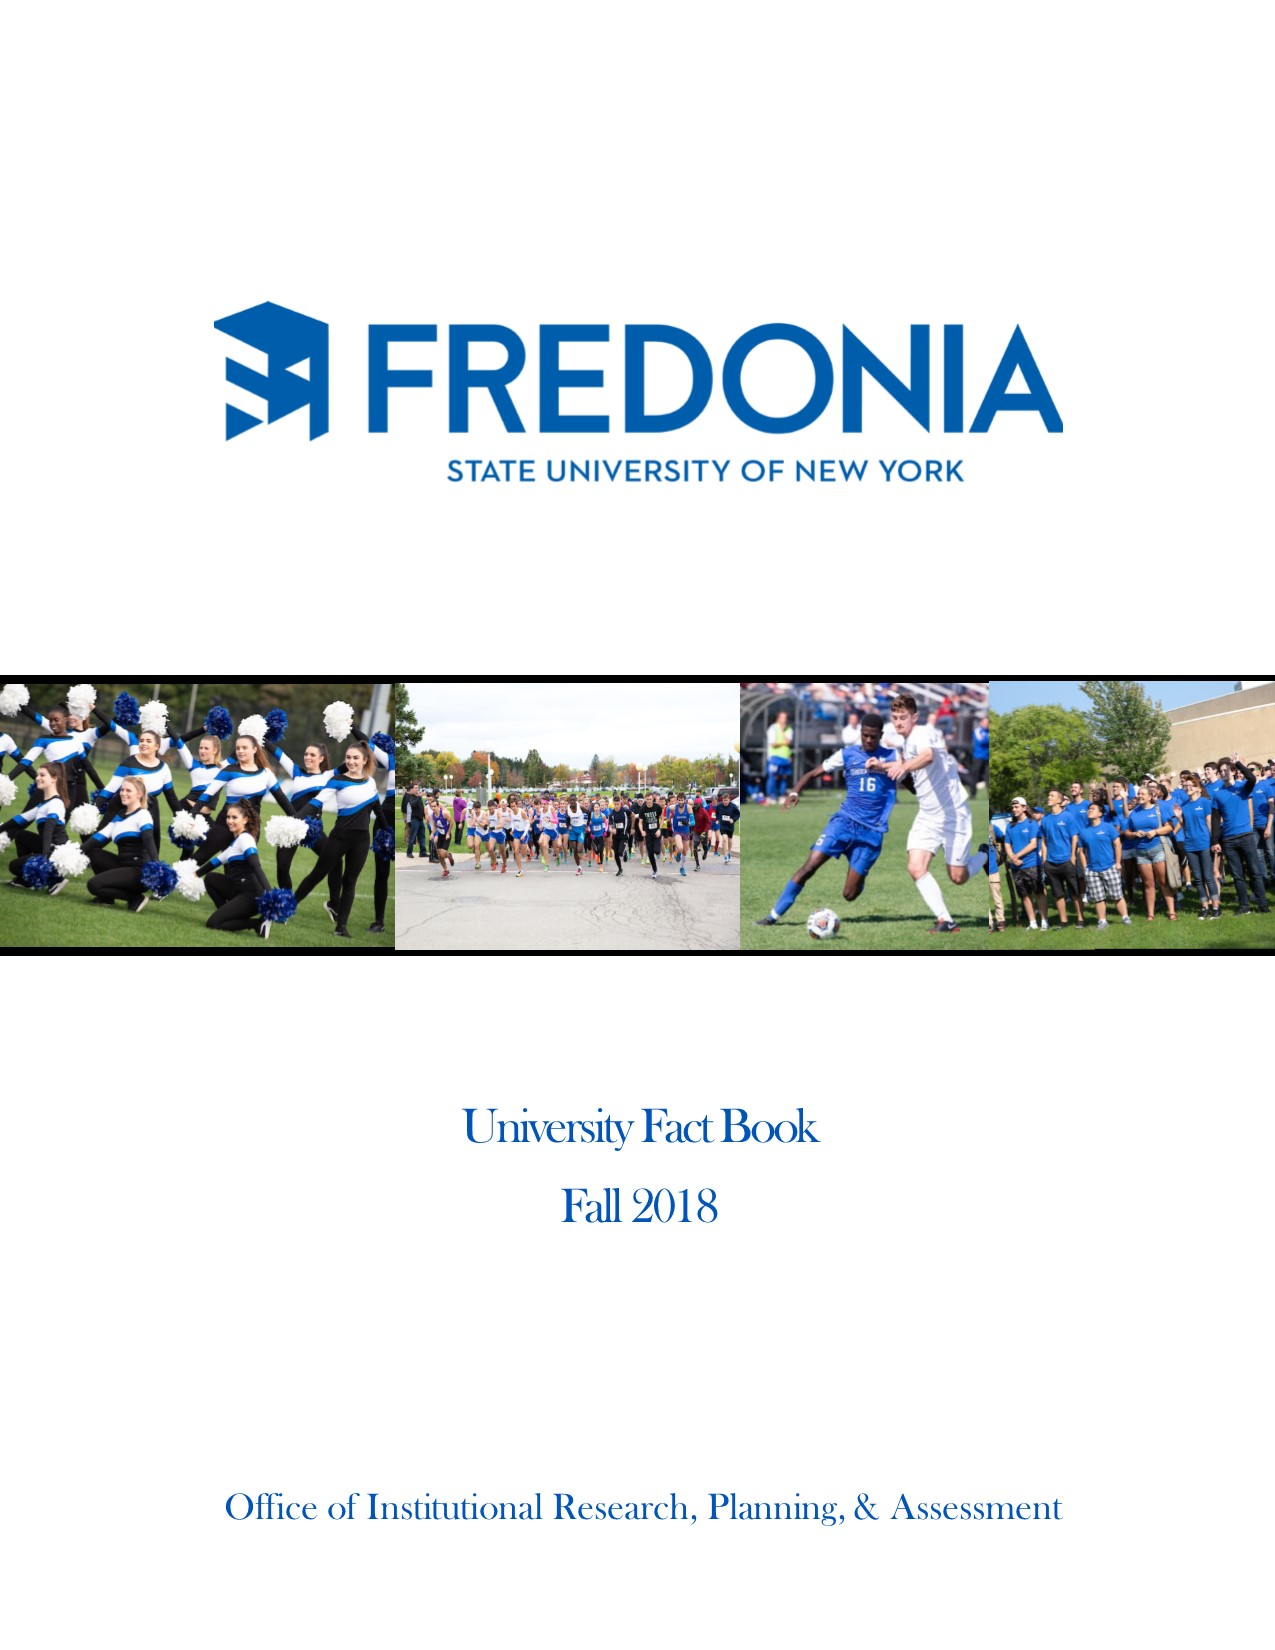 SUNY at Fredonia University Factbook Fall 2016